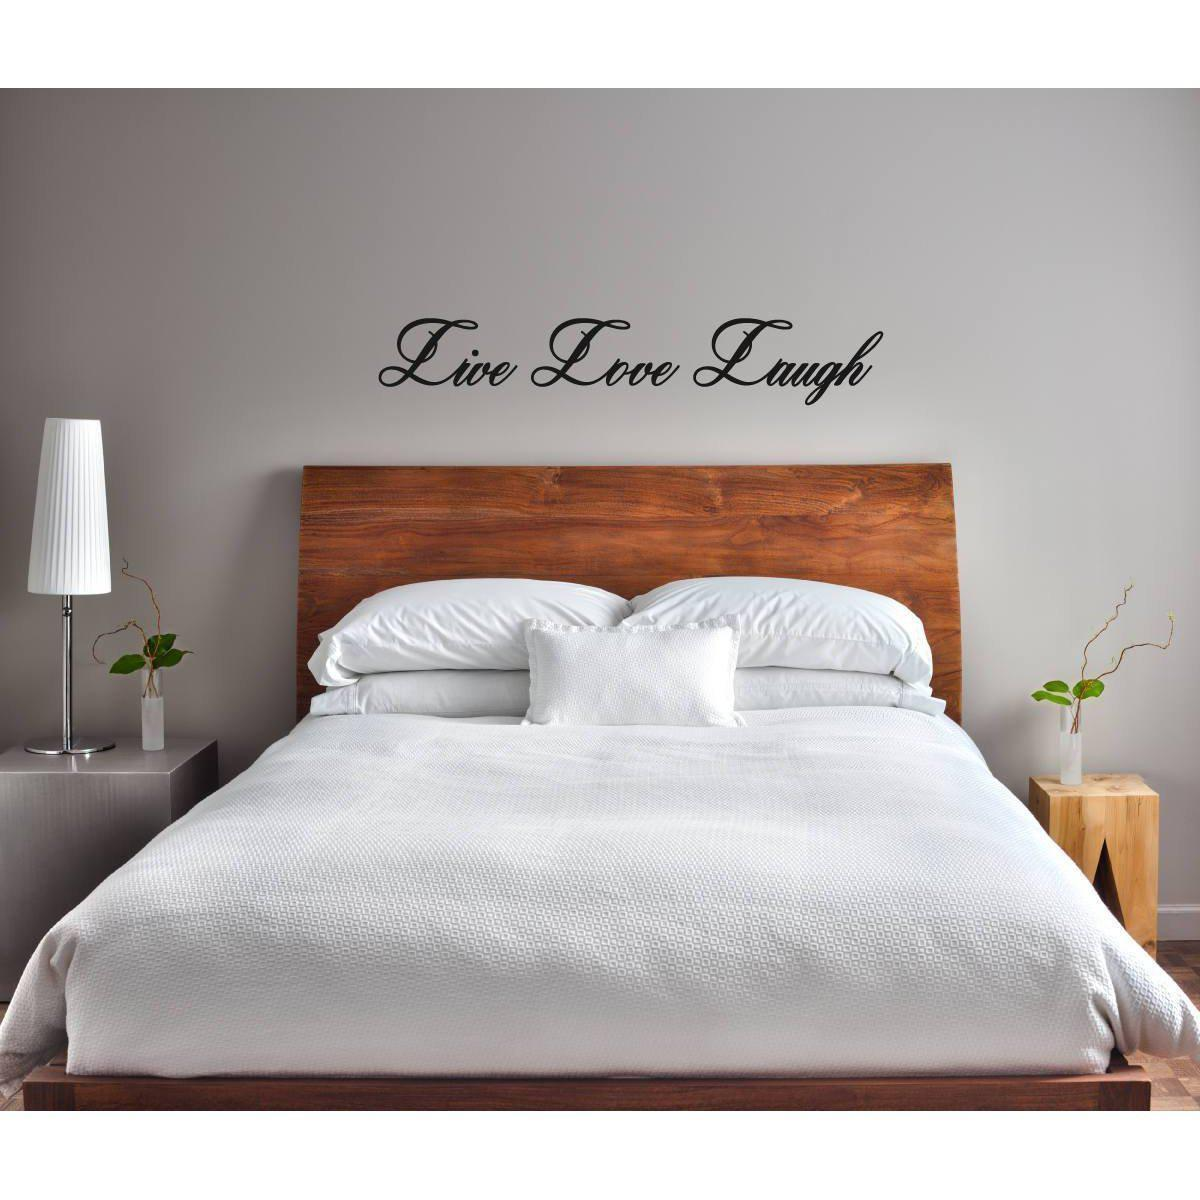 Live Love Laugh Wall Sticker Quote, Bedroom Wall Sticker, Bedroom Wall Decal, Wall Art Quote, Love Quote, Wall Art, Quote, Art, Home Decor